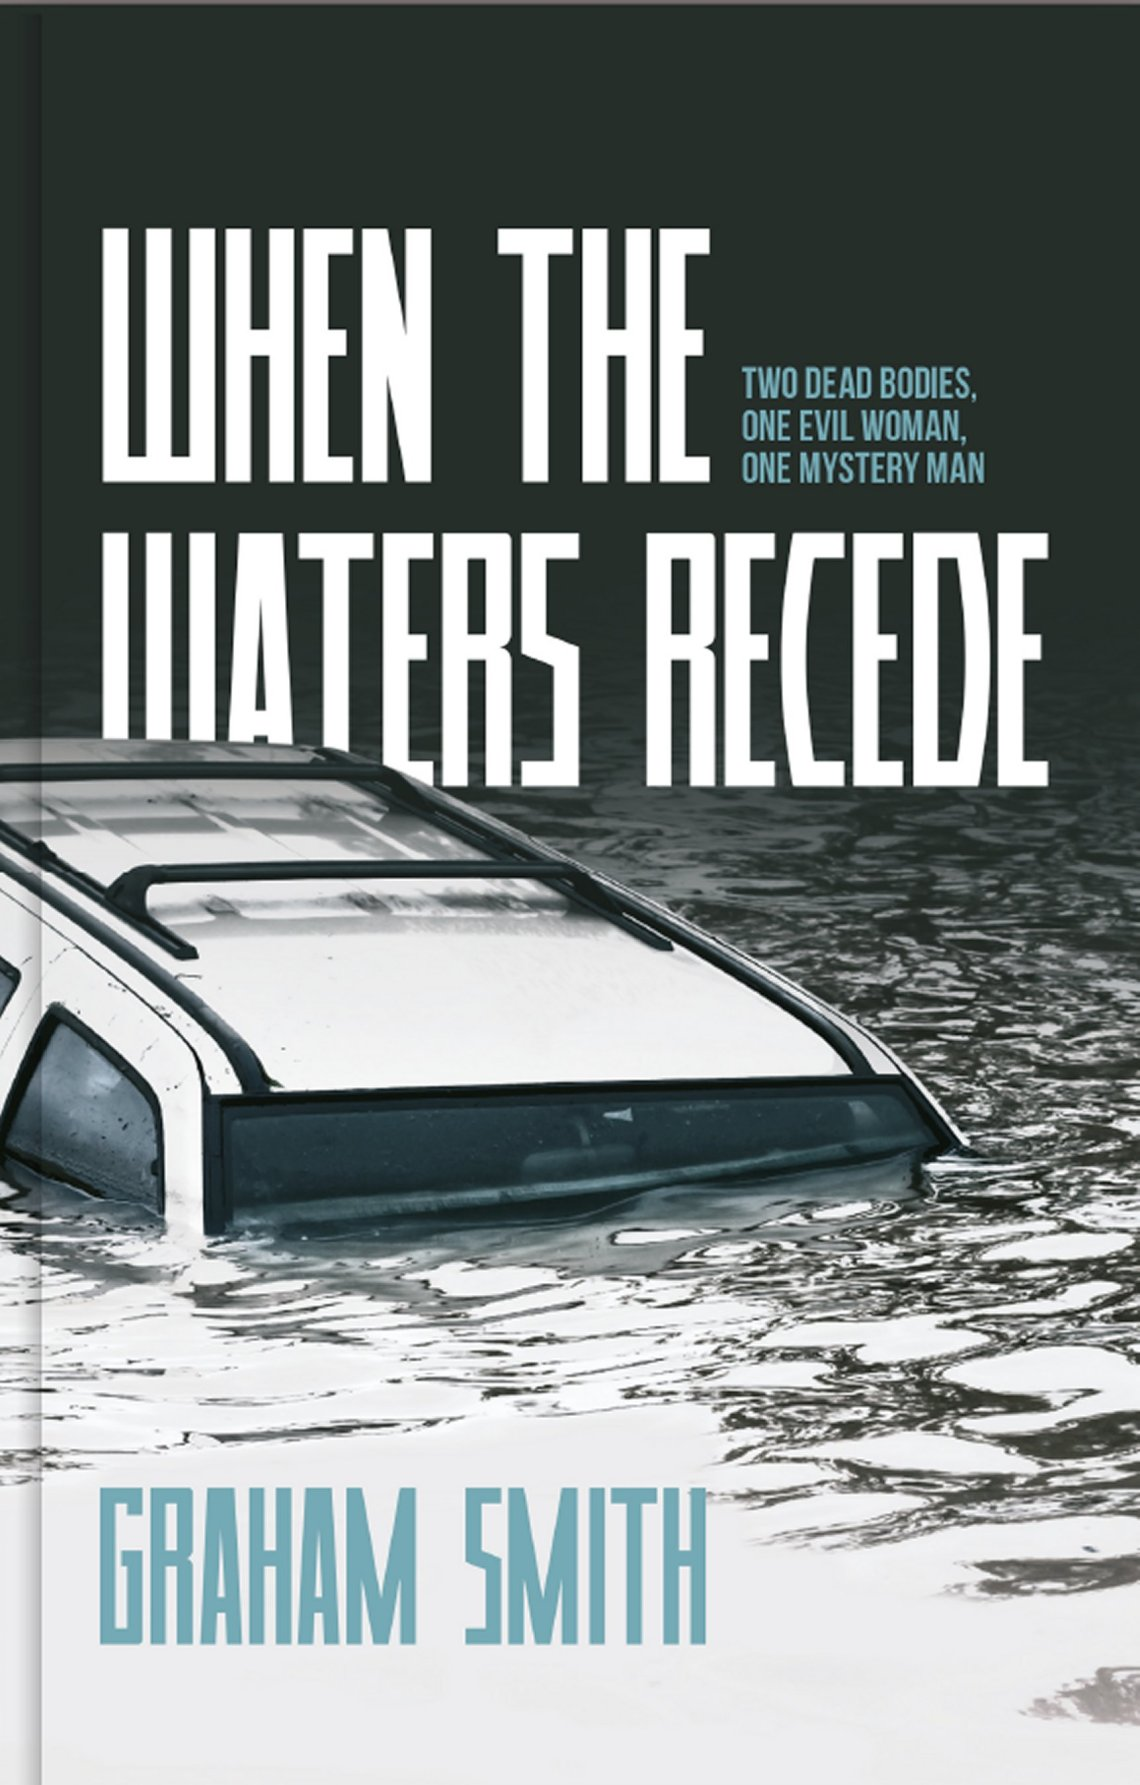 When The Waters Recede - Graham Smith - Book Cover